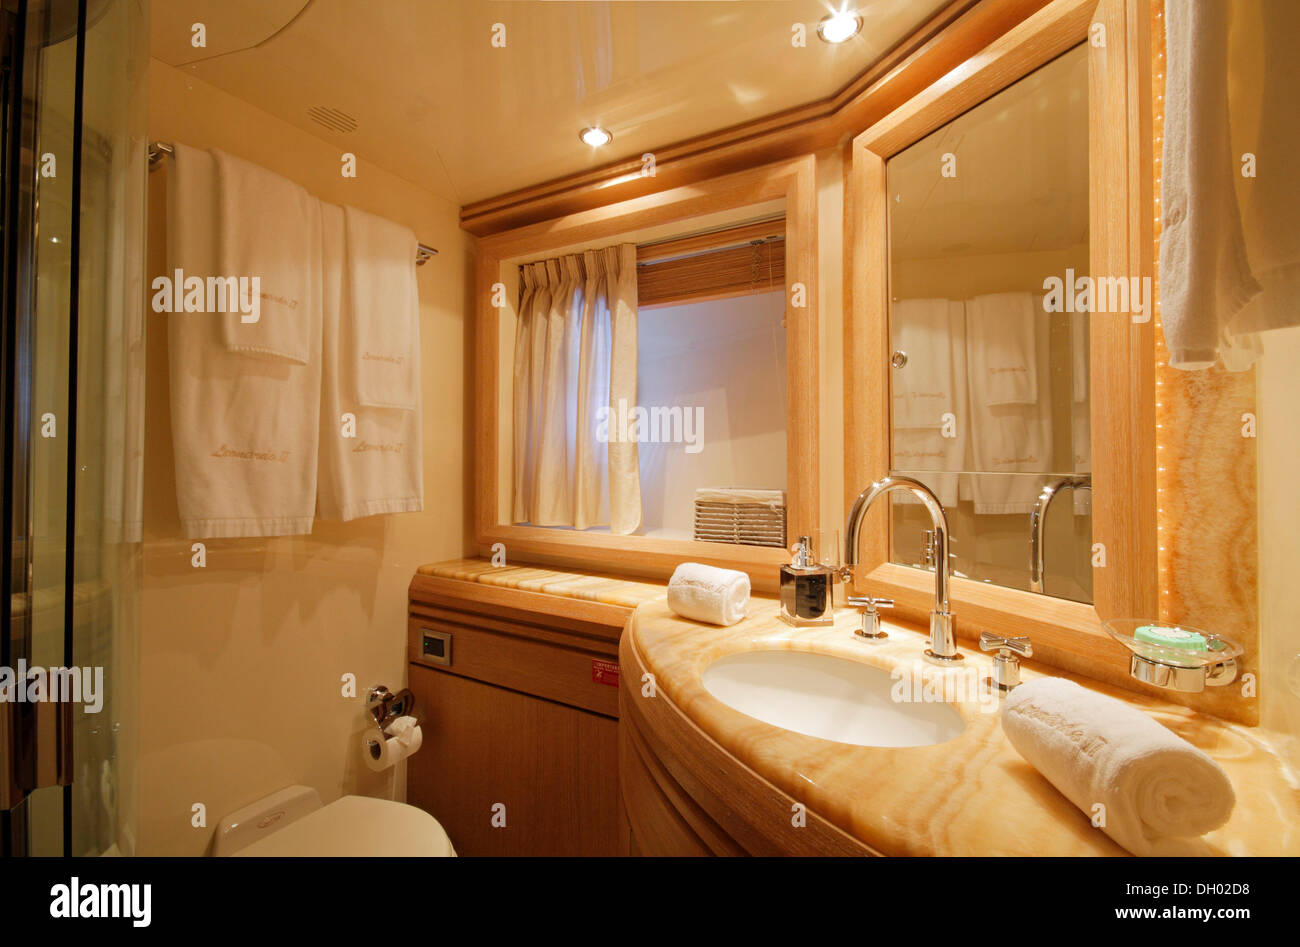 Boat Toilet Stock Photos Amp Boat Toilet Stock Images